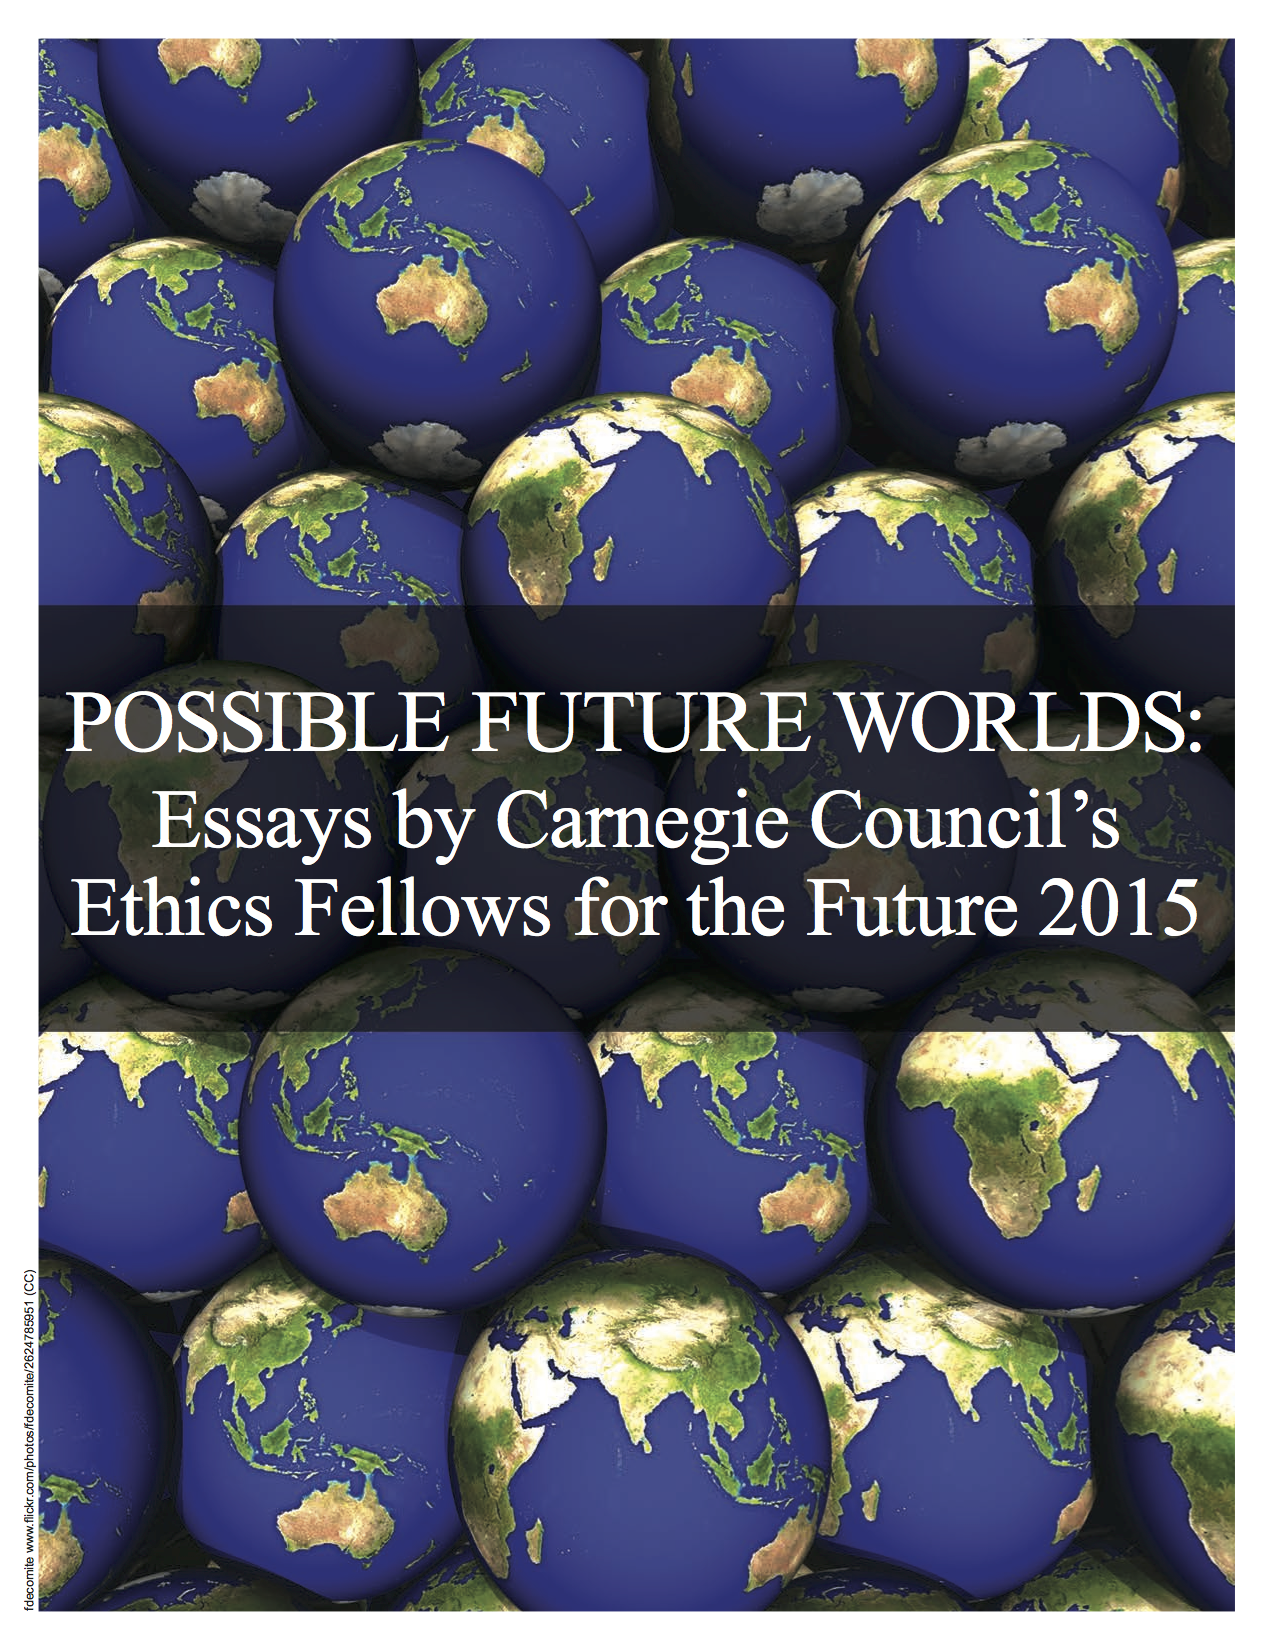 carnegie council ethics fellows for the future essays of all  carnegie council ethics fellows for the future essays of all possible future worlds